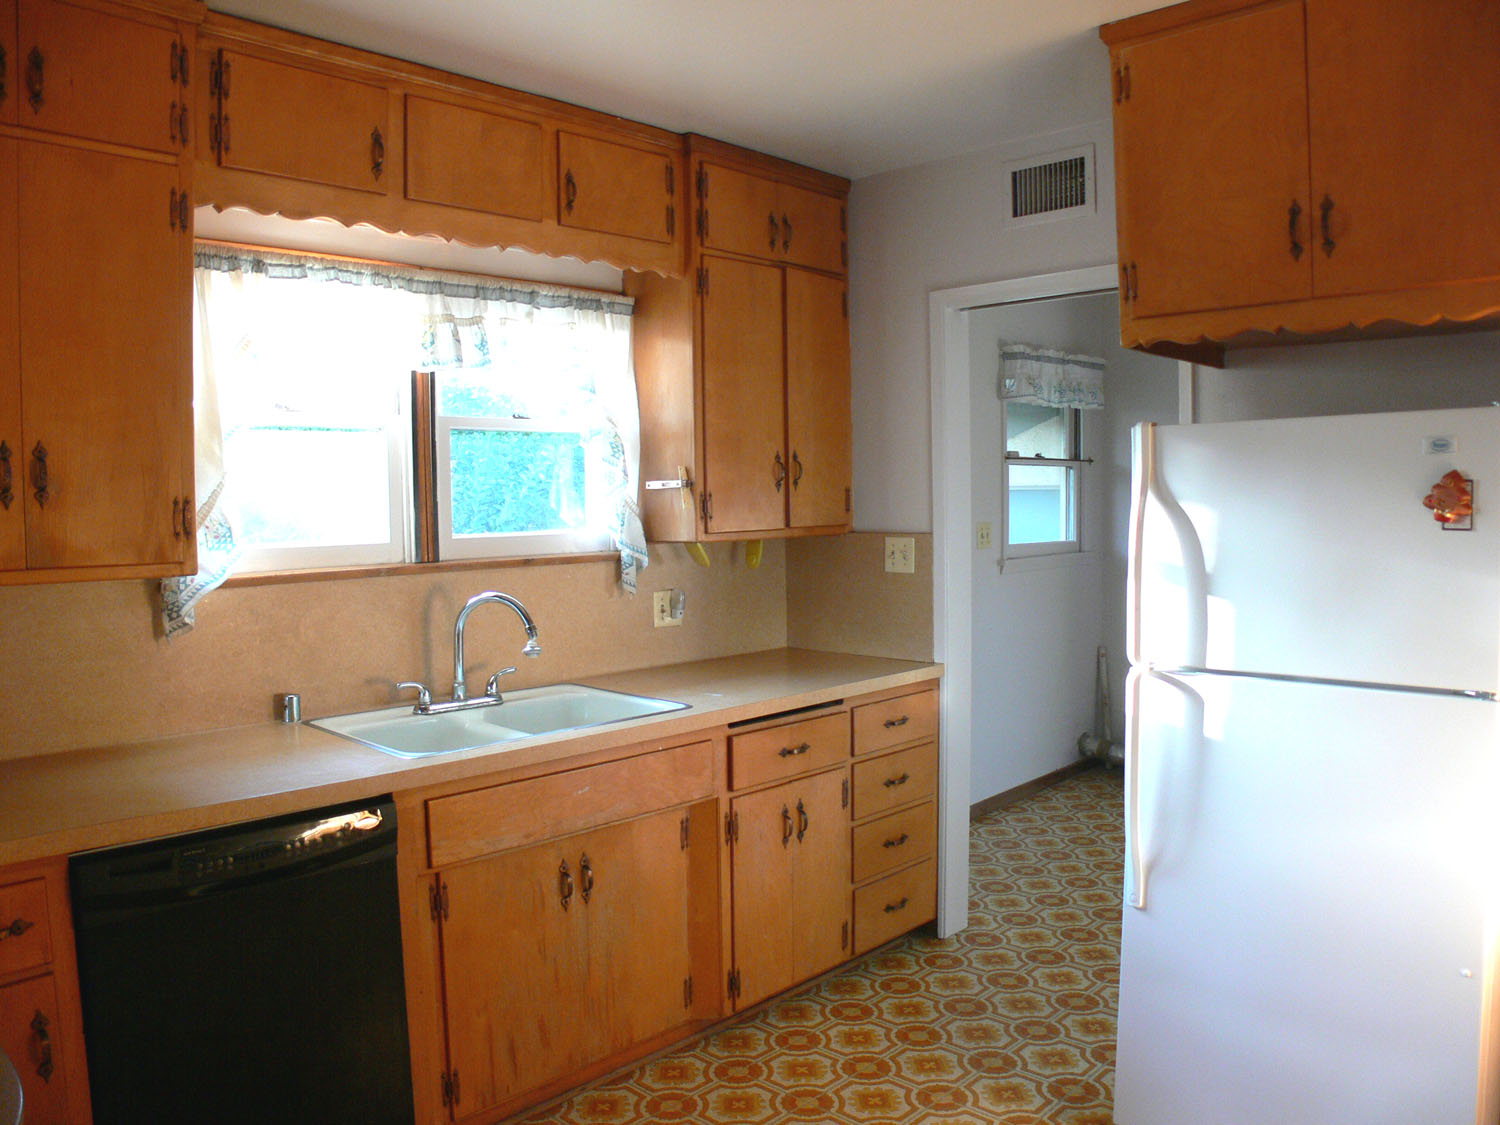 Original kitchen in really good condition. Clean and spacious with amenities like a dishwasher, gas stove, built-in lazy susan and pull-out drawers!